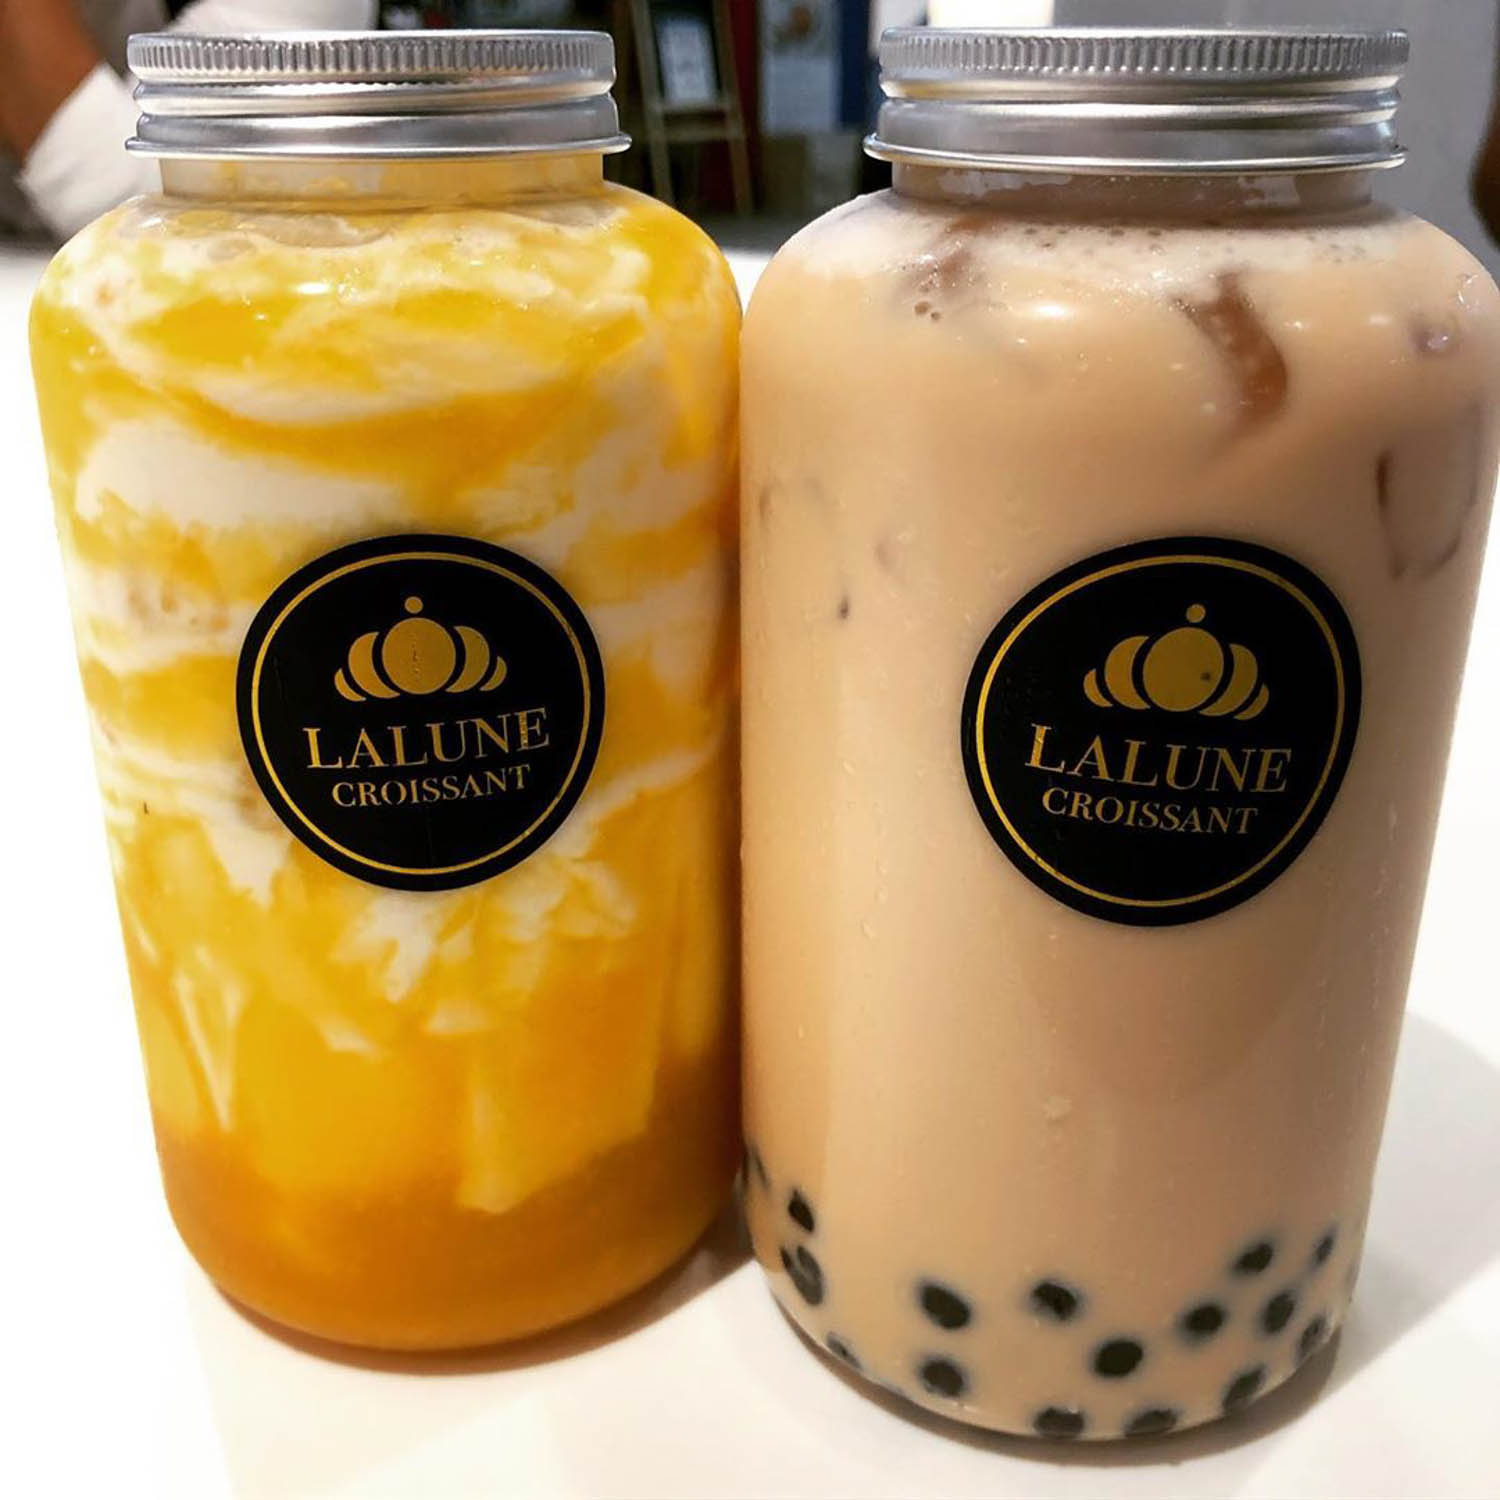 Bubble Tea Shops - LaLune Croissant